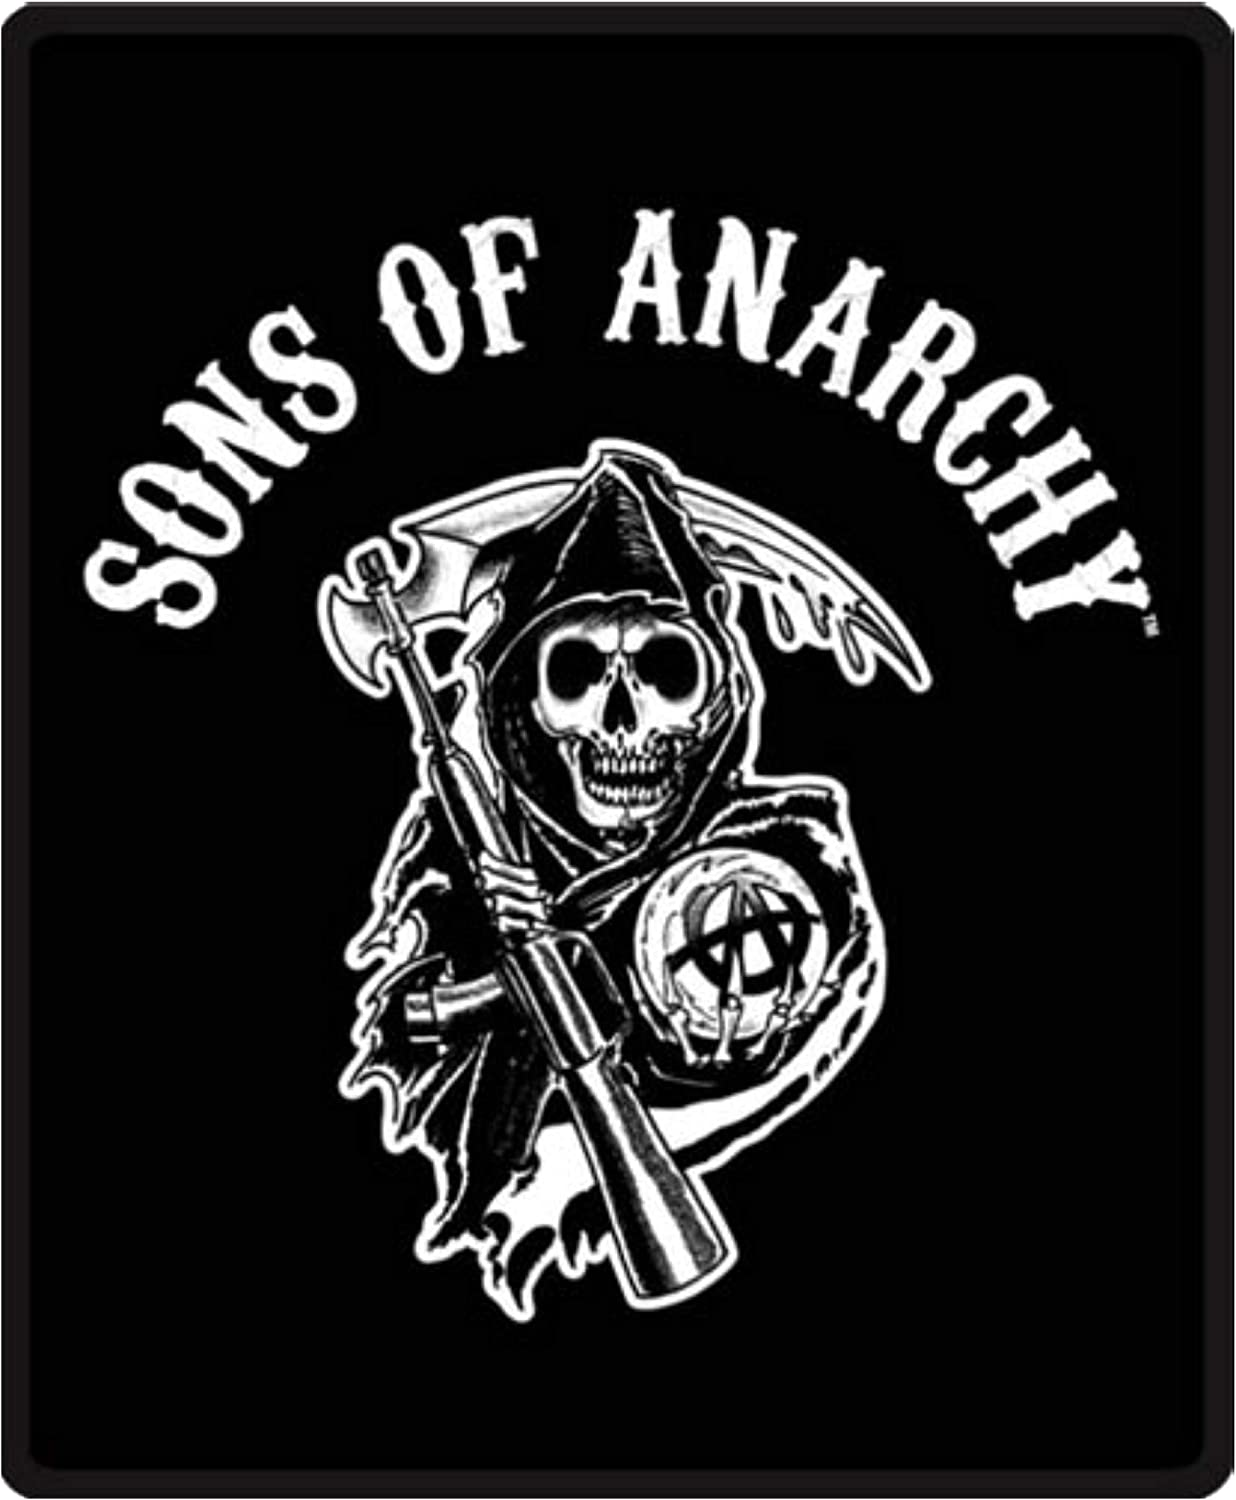 Sons Of Anarchy King Size Luxury Plush Mink Blanket 84 X94 Blankets Throws Jagattv Home Garden